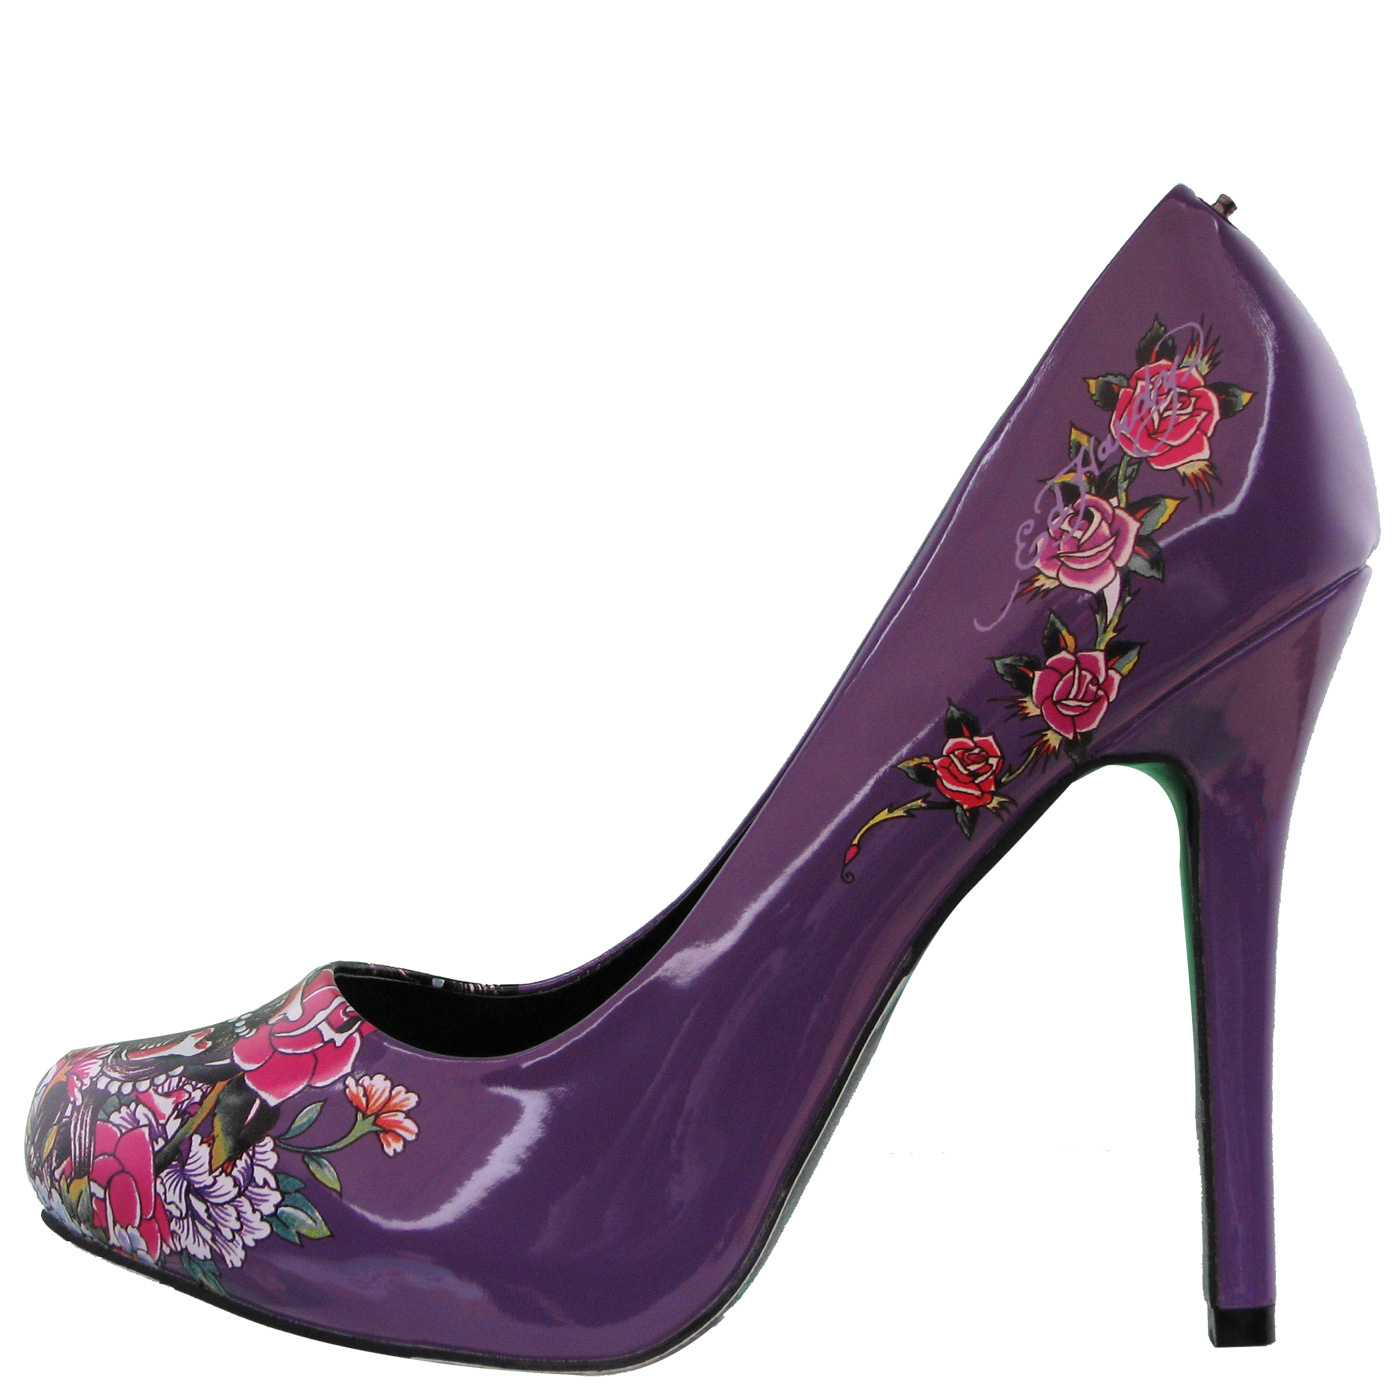 Ed Hardy Sunset Heel Shoe for Women - Purple